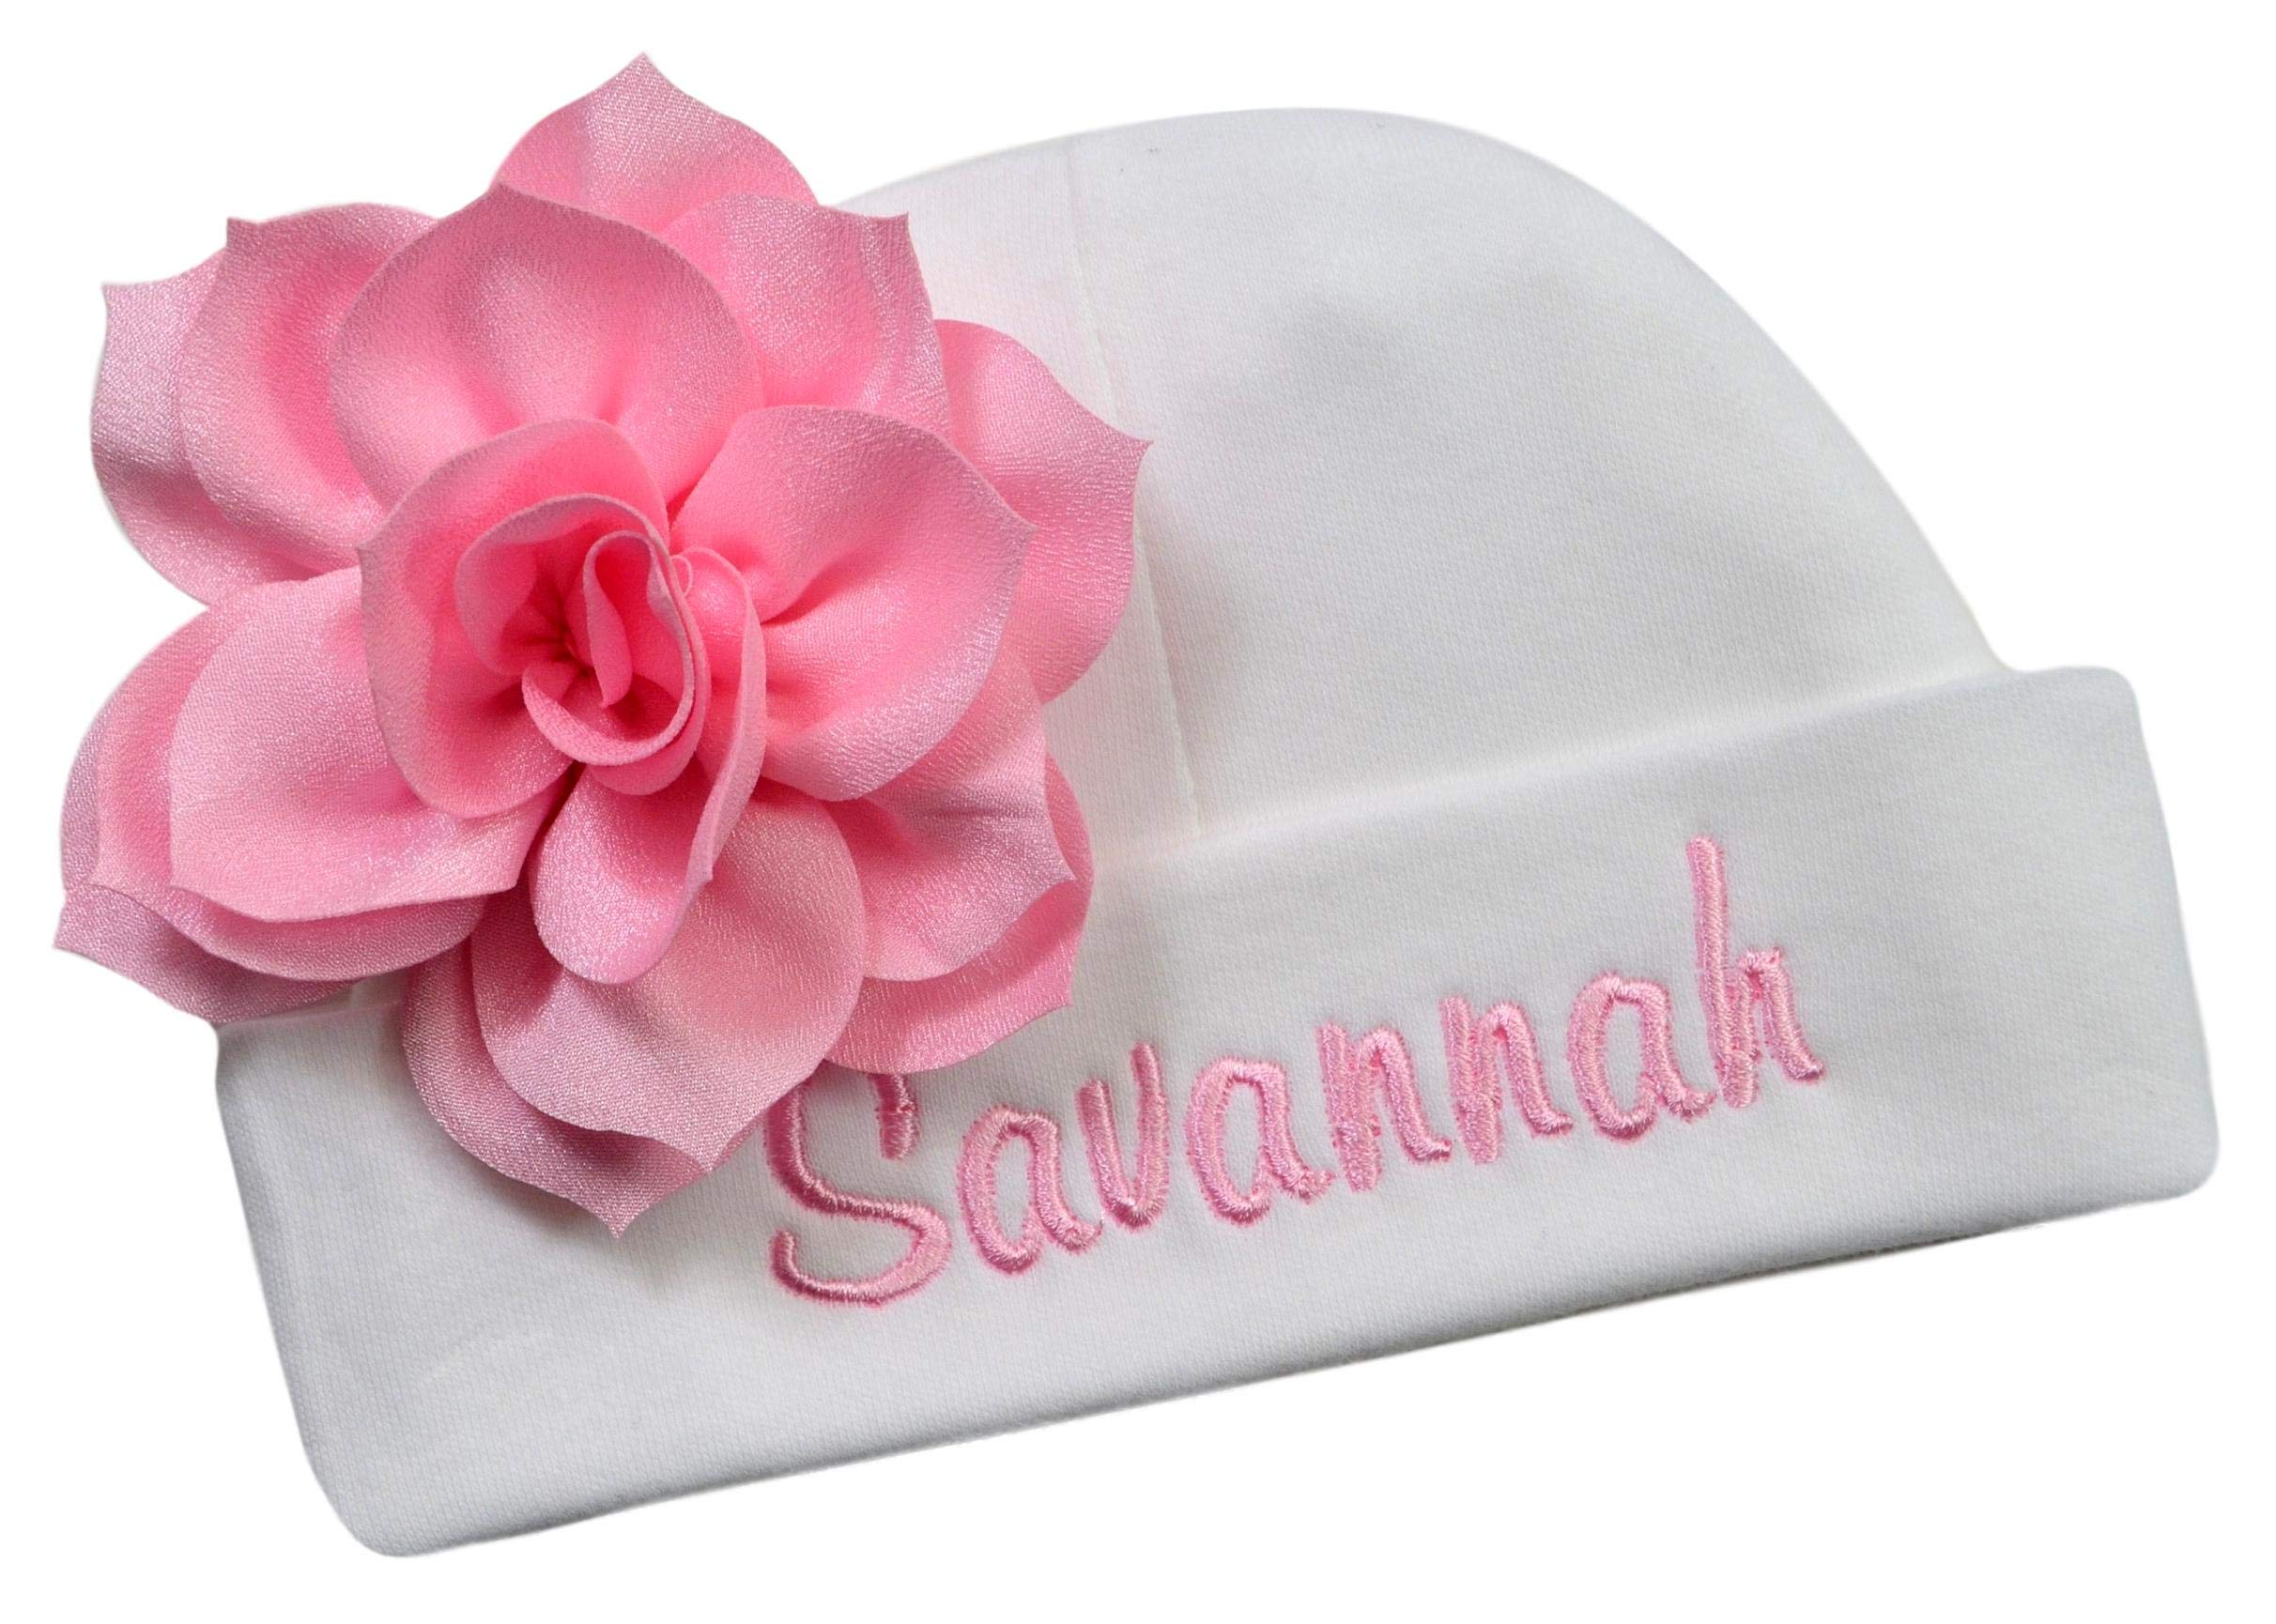 Personalized Embroidered Baby Girl Hat with Lotus Flower Your Custom Name (White Hat/Light Pink Flower)